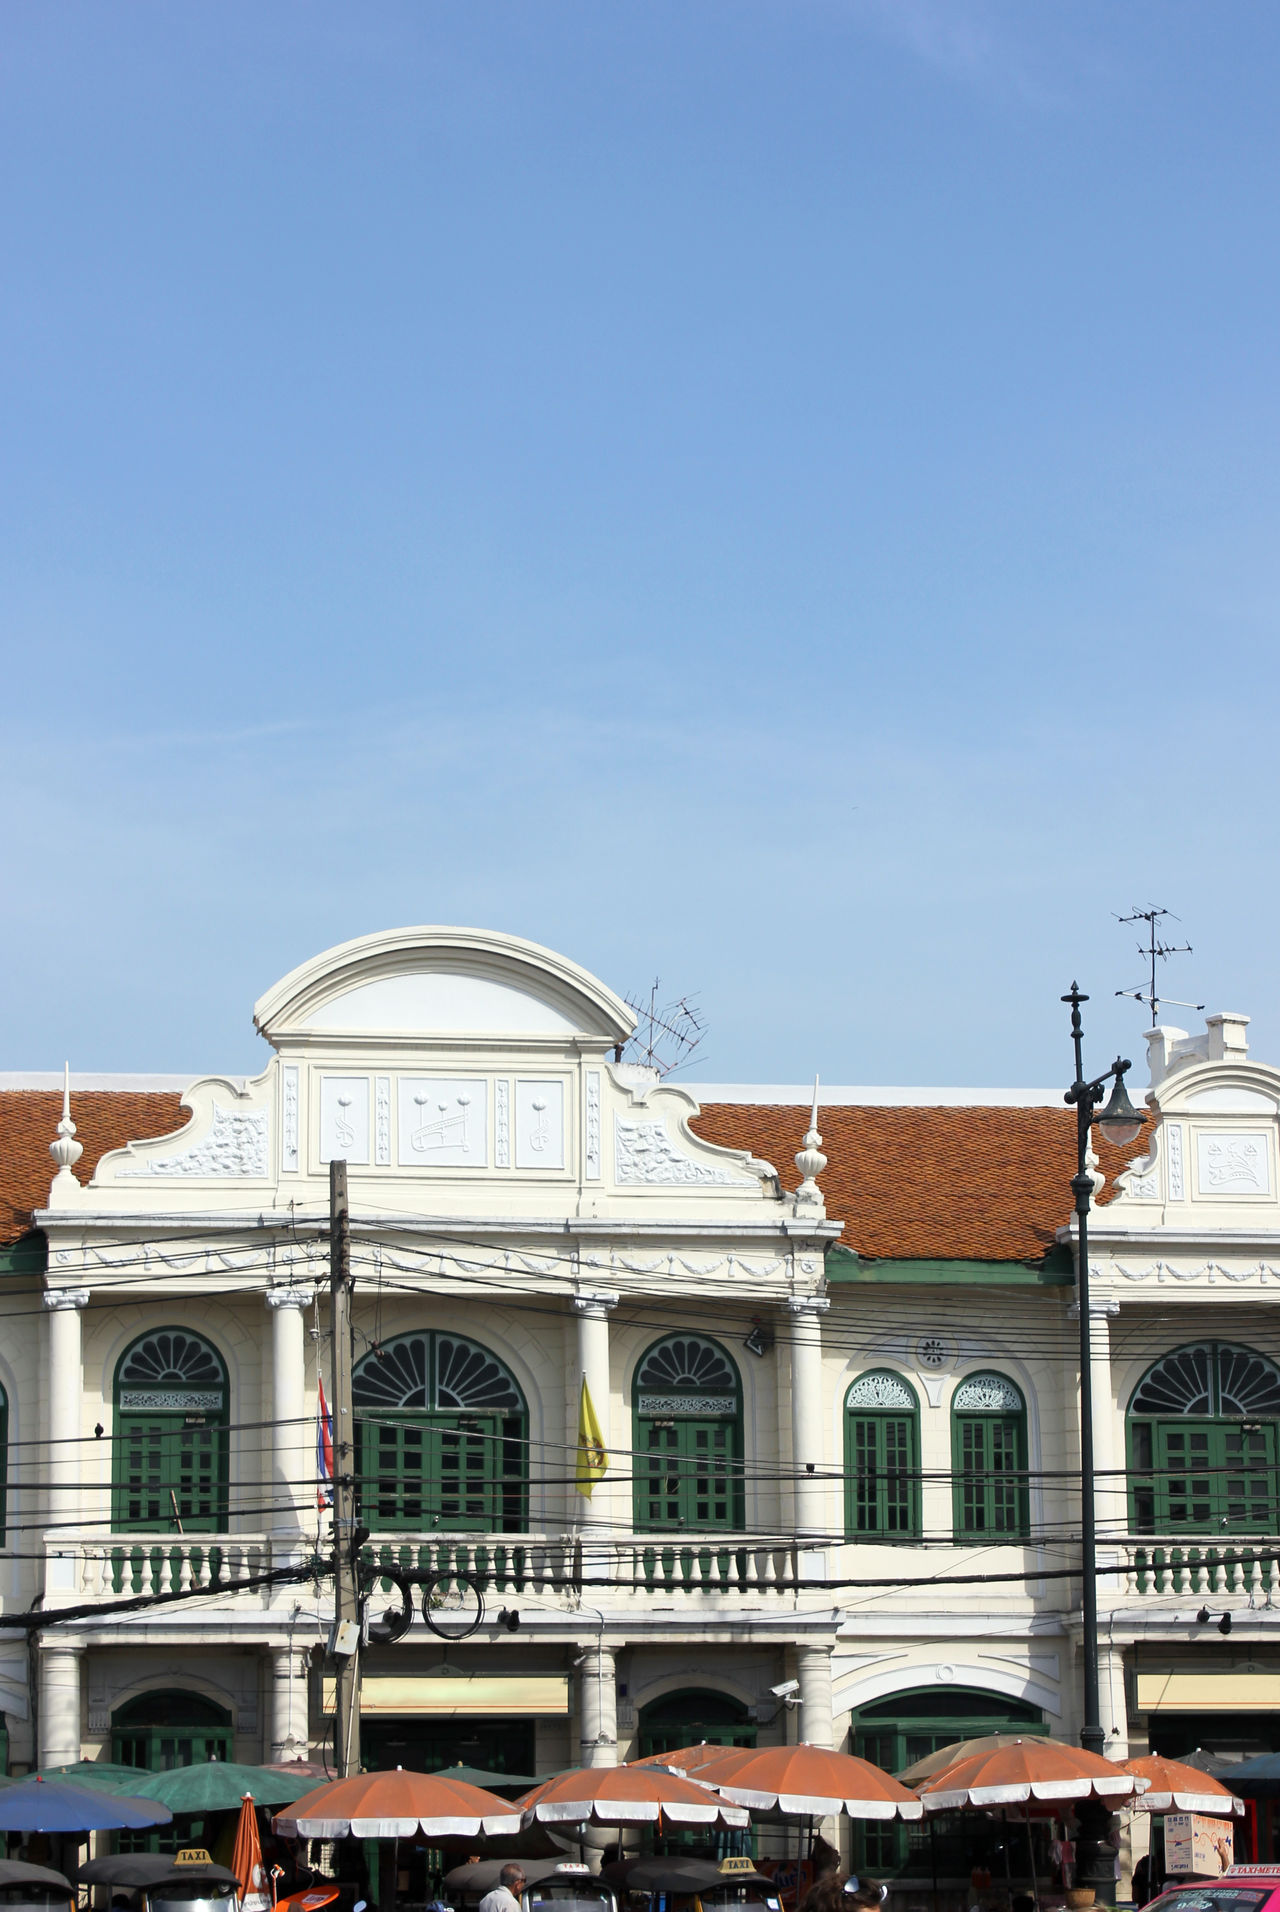 Chinese Portugese Building Style Architecture Building Building Exterior Built Structure Chinese Portugese Clear Sky Day Outdoors Sky Thailand Vintage Building